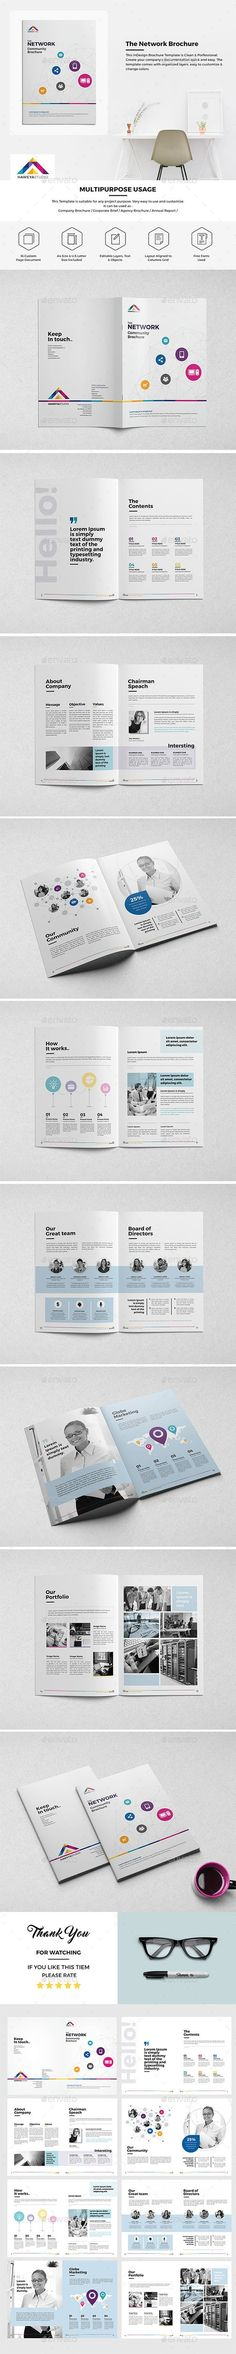 16 Pages Haweya Community Brochure Template PSD. Download here: http://graphicriver.net/item/haweya-community-brochure-16-pages/15582093?ref=ksioks: